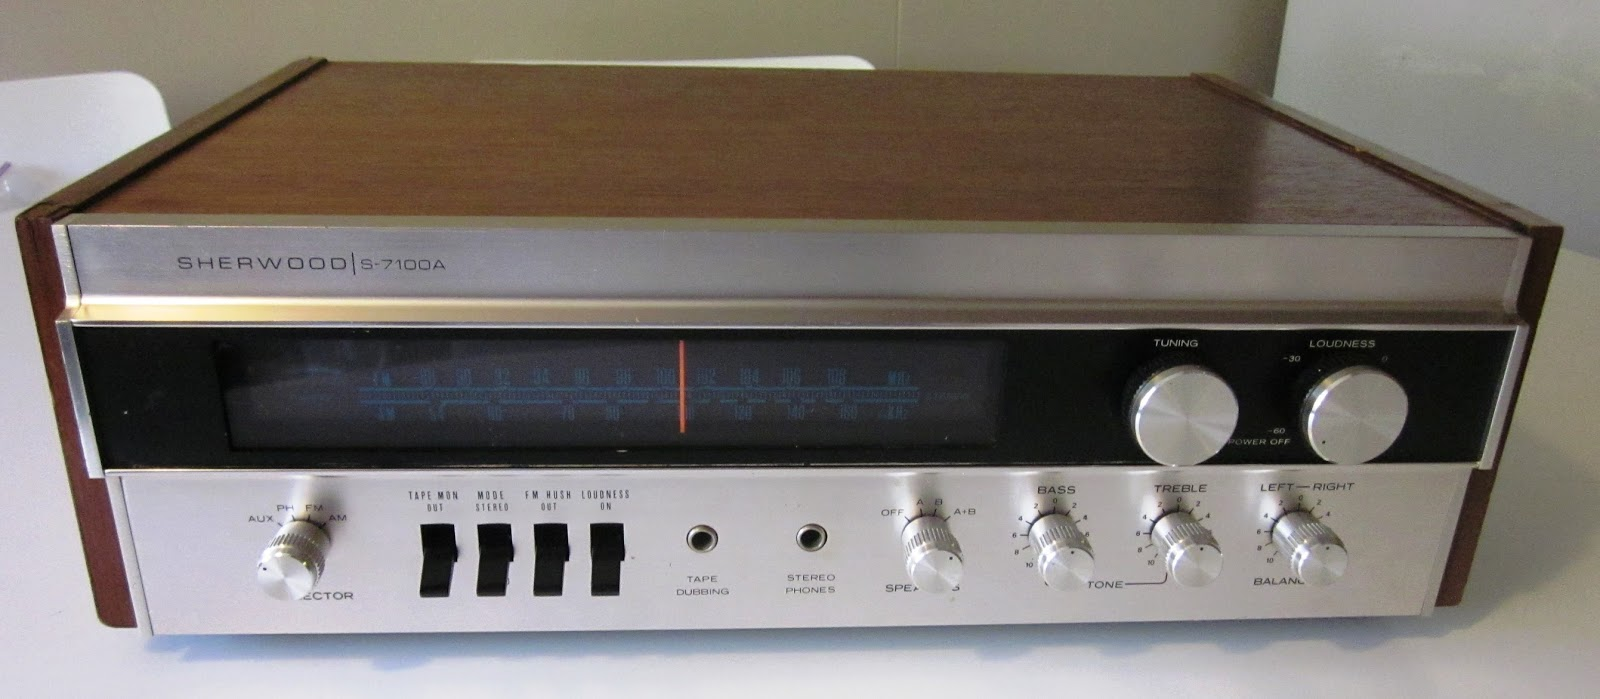 Speakerholic Sherwood S 7100a Receiver